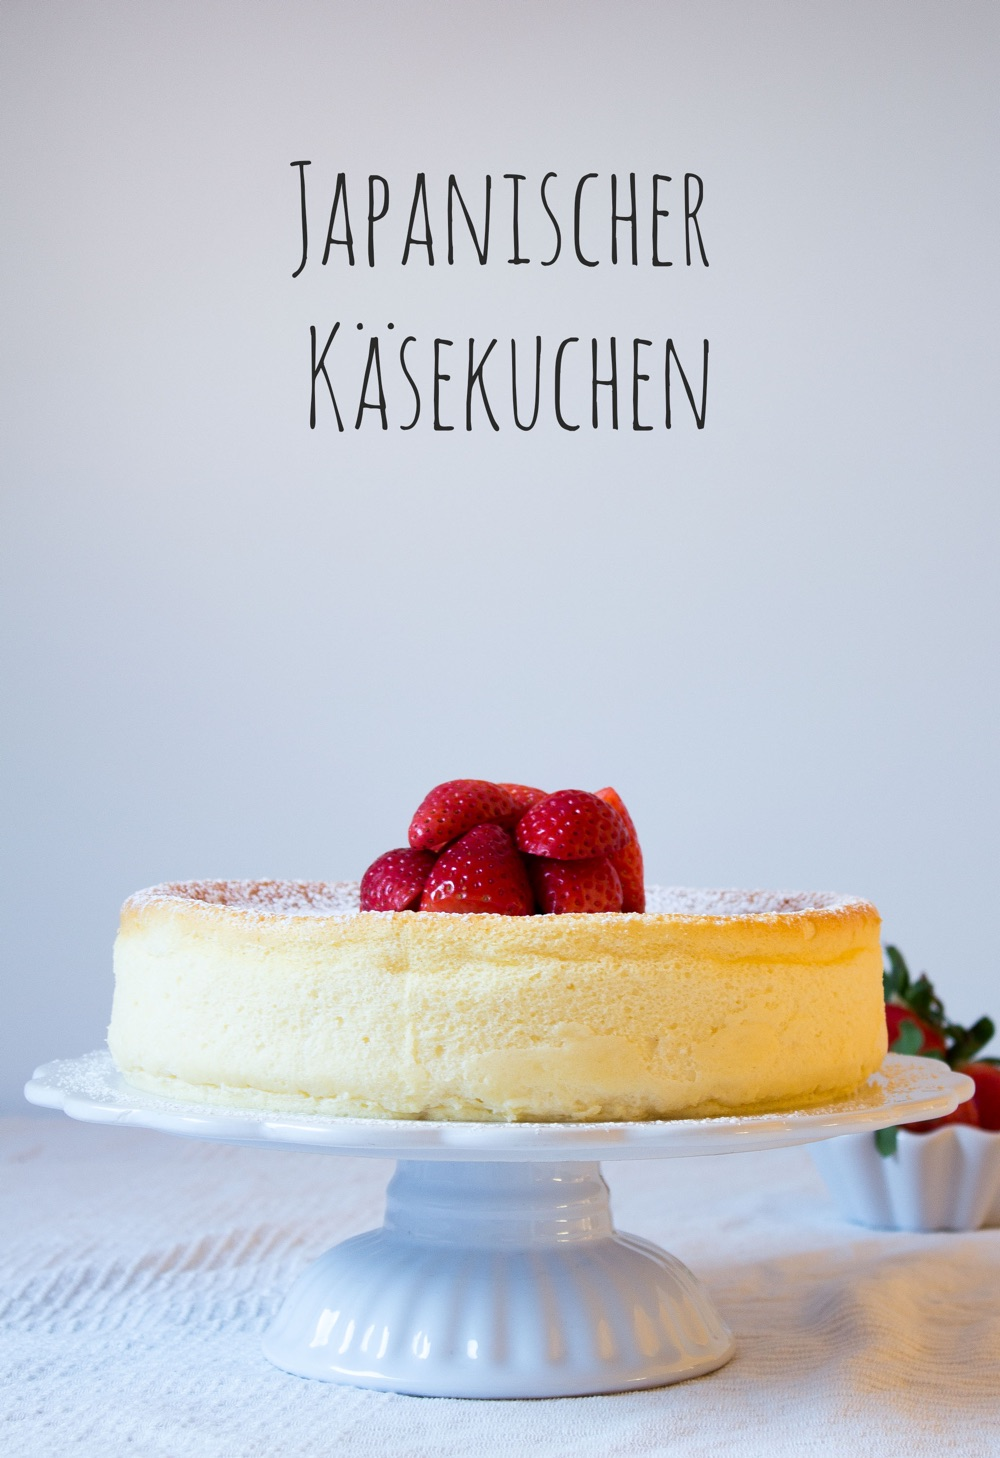 Little Sweet Things Japanischer Kaesekuchen